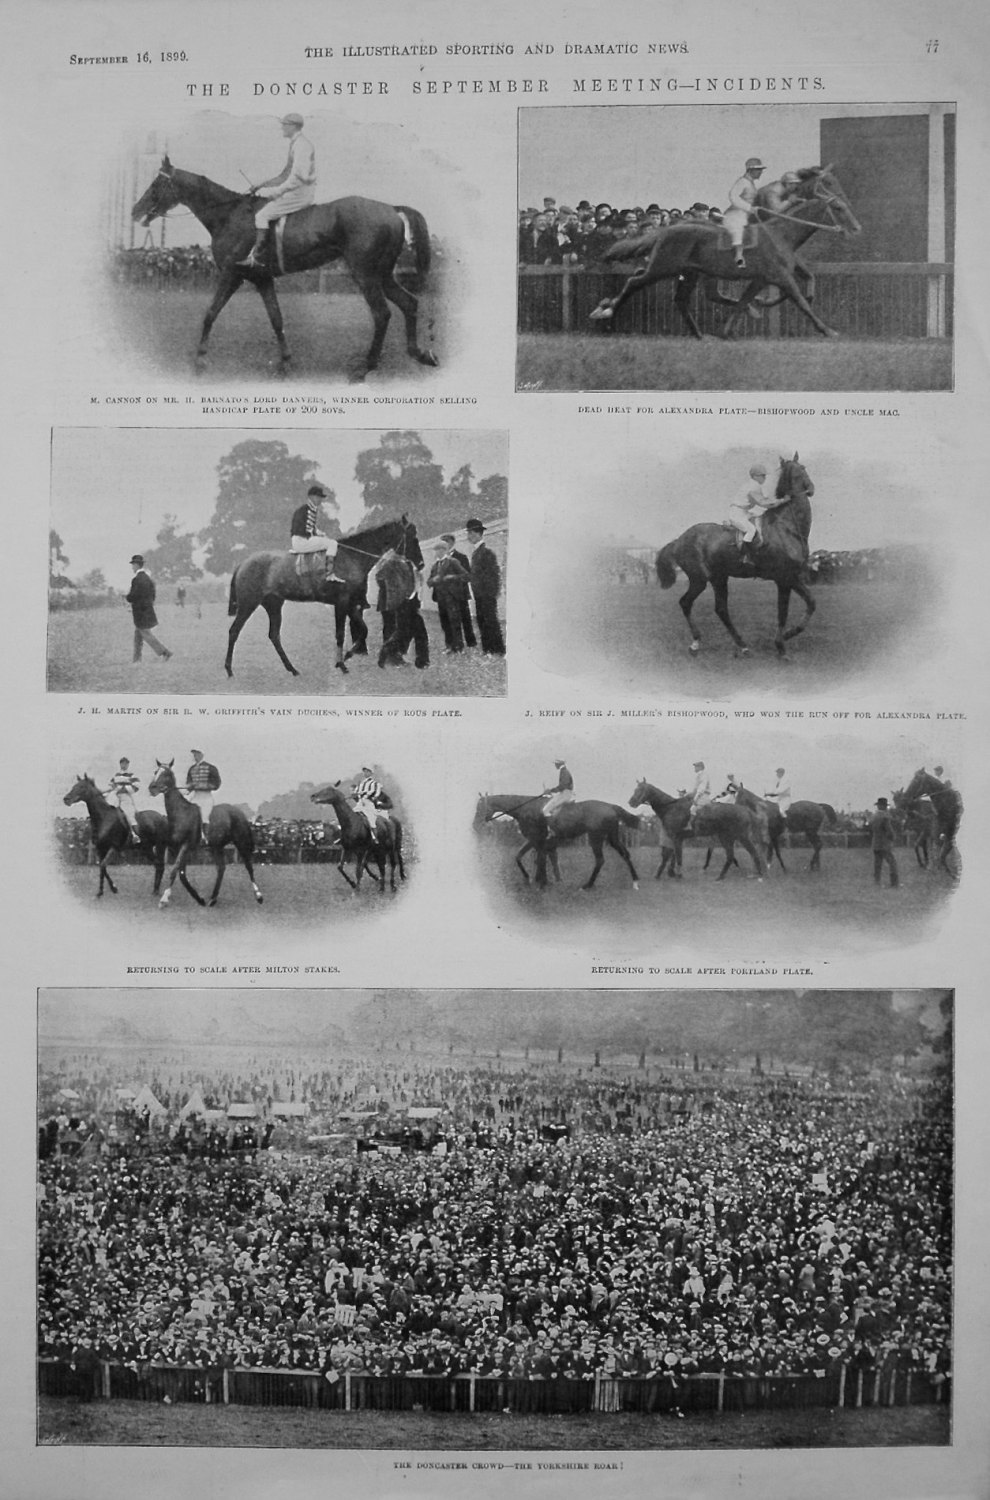 Doncaster September Meeting - Incidents. 1899